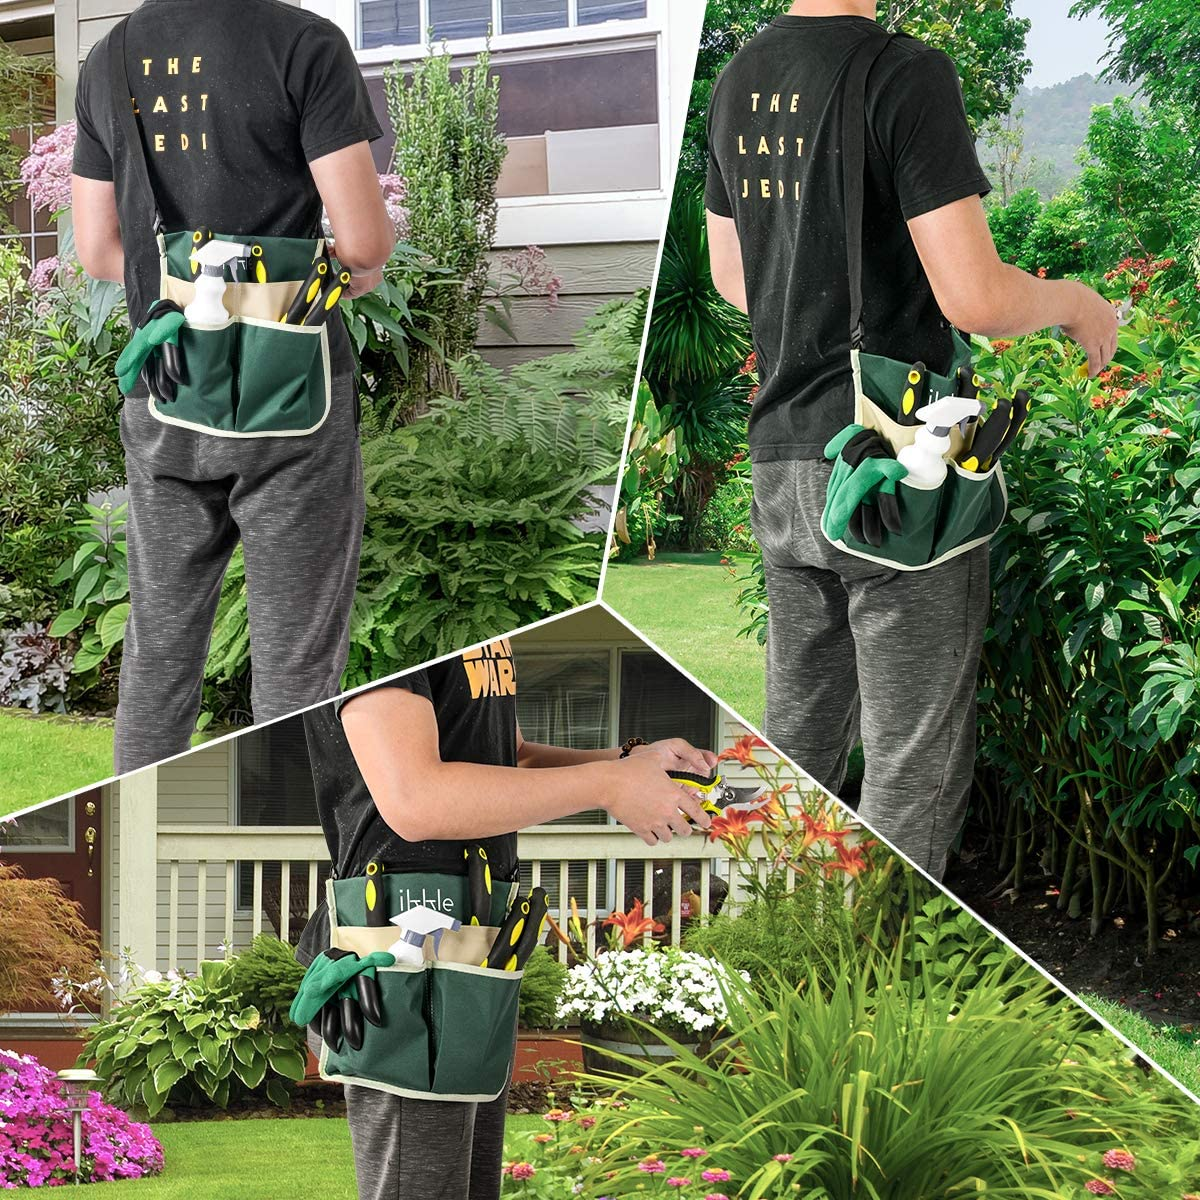 Lightweight Pruning Shears- Portable Garden Bench EVA Foam Pad With Kneeling Pad Adjustable Belt Tool Pounch Protect Knees Clothes Garden Kneeler And Seat With 2 Bonus Tool Pouches Sturdy